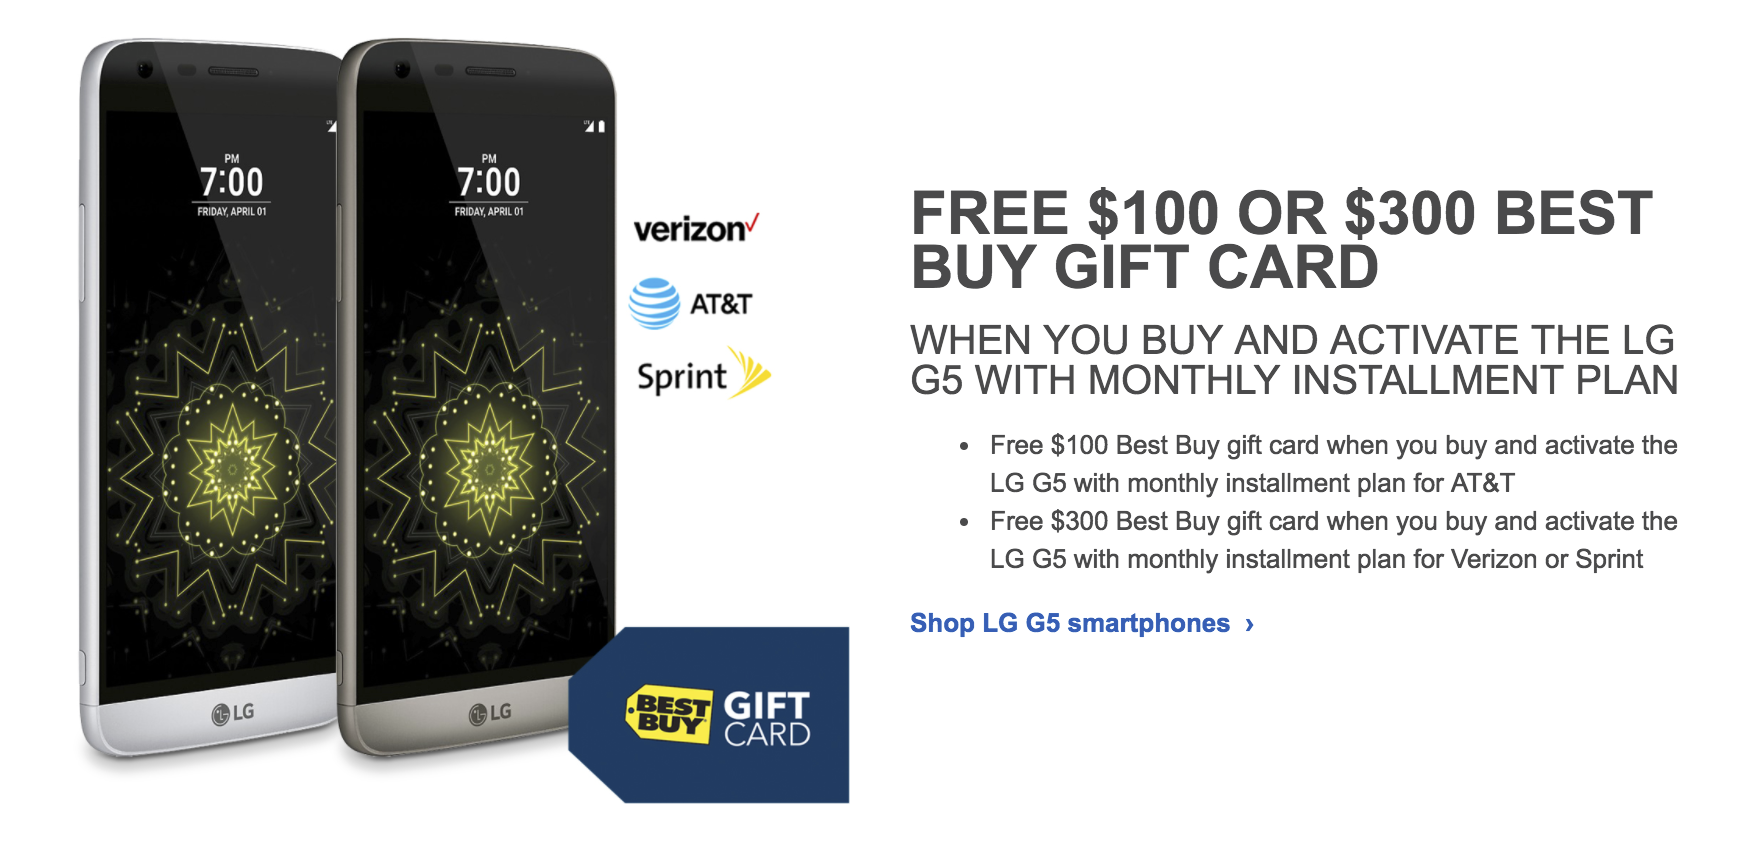 Deal Alert Save Up To 500 On The Galaxy S7 And S7 Edge Lg G5 Moto Z Droid And More At Best Buy